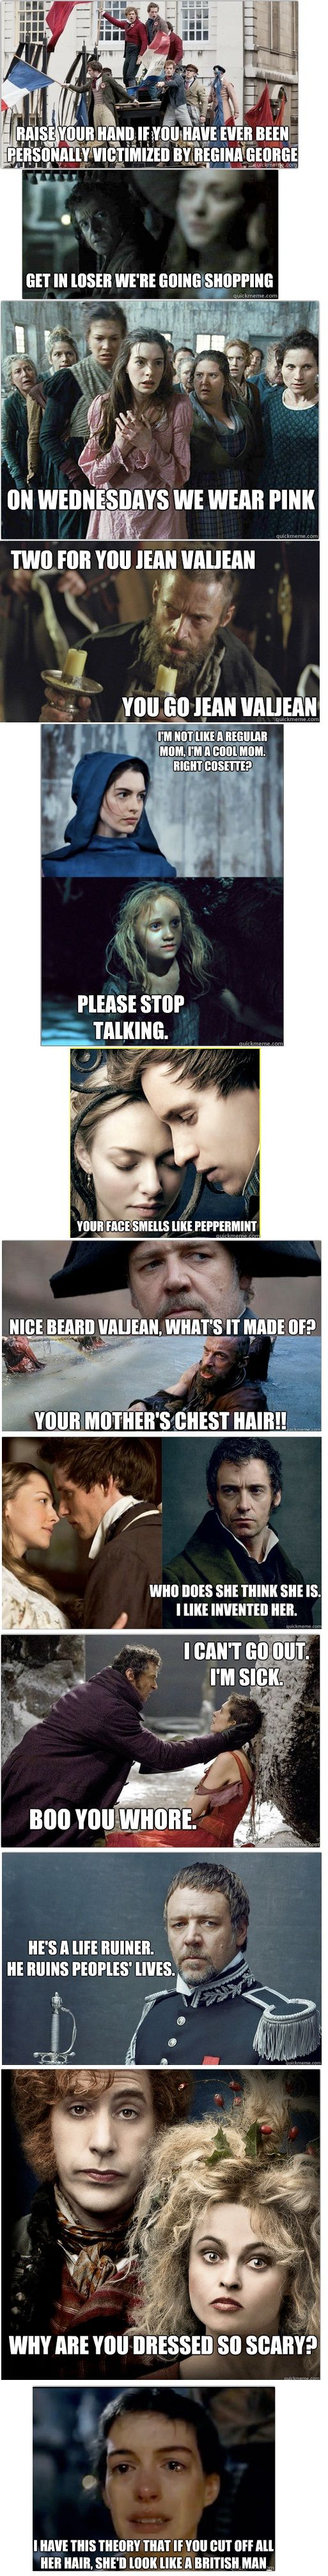 les mis + mean girls = greatness!